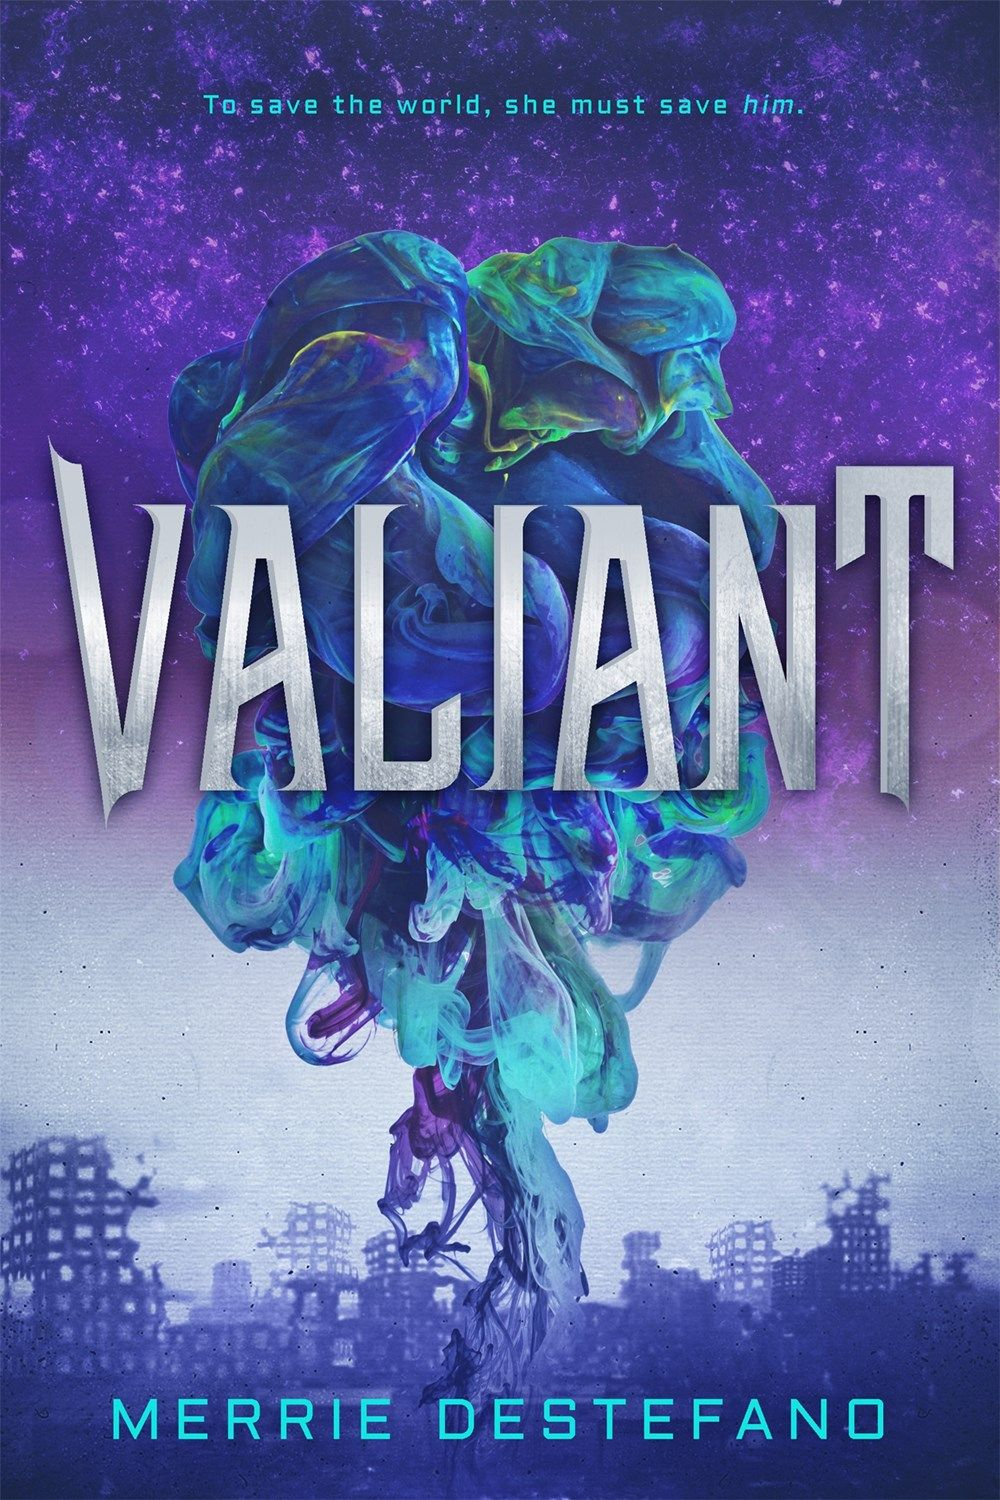 Valiant by Merrie Destefano